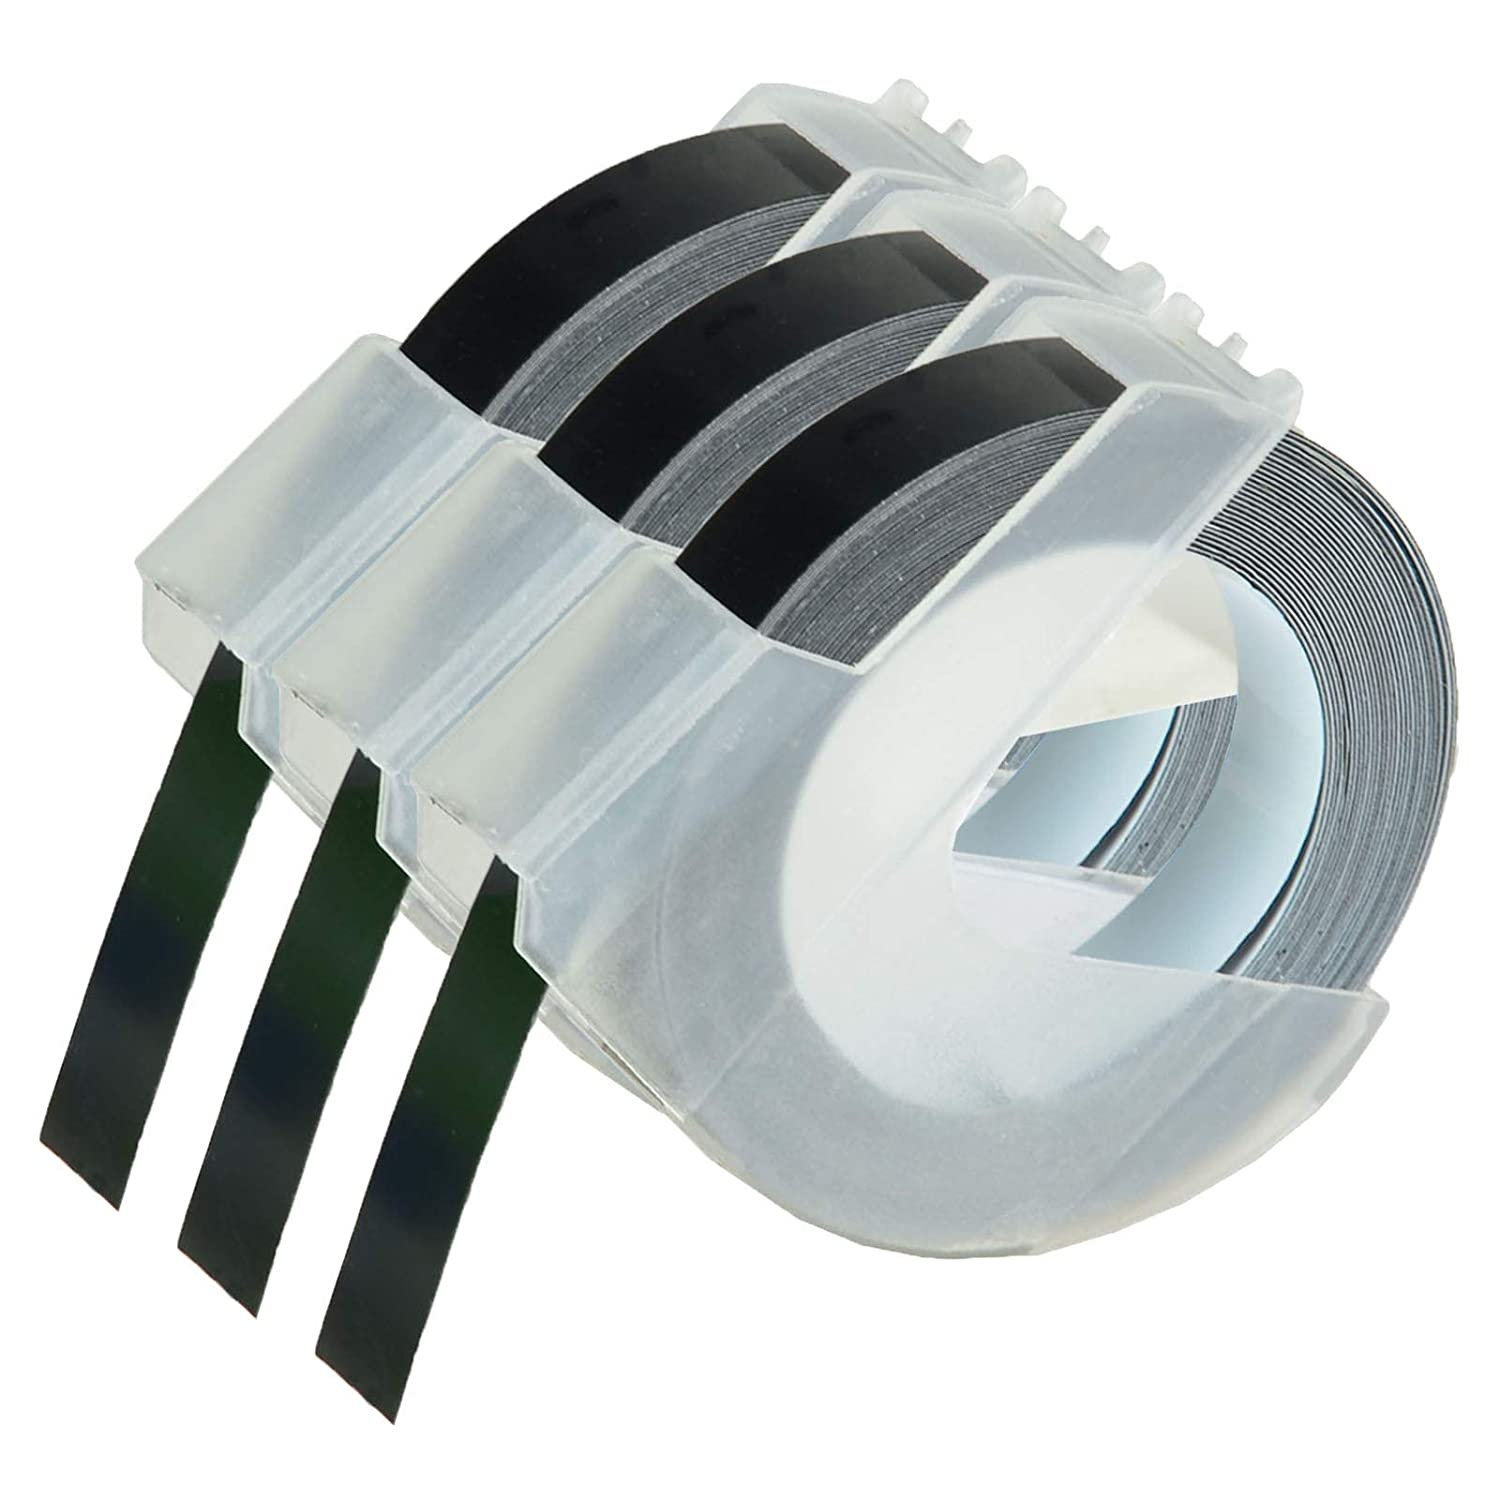 KCYMTONER 3 roll Pack Replace DYMO 3D Plastic Embossing Labels Tape for Embossing White on Black 3/8'' x 9.8' 9mm x 3m 520109 Compatible Dymo Executive III Embosser 1011 1550 1570 1610 Label Markers altom international Inc.